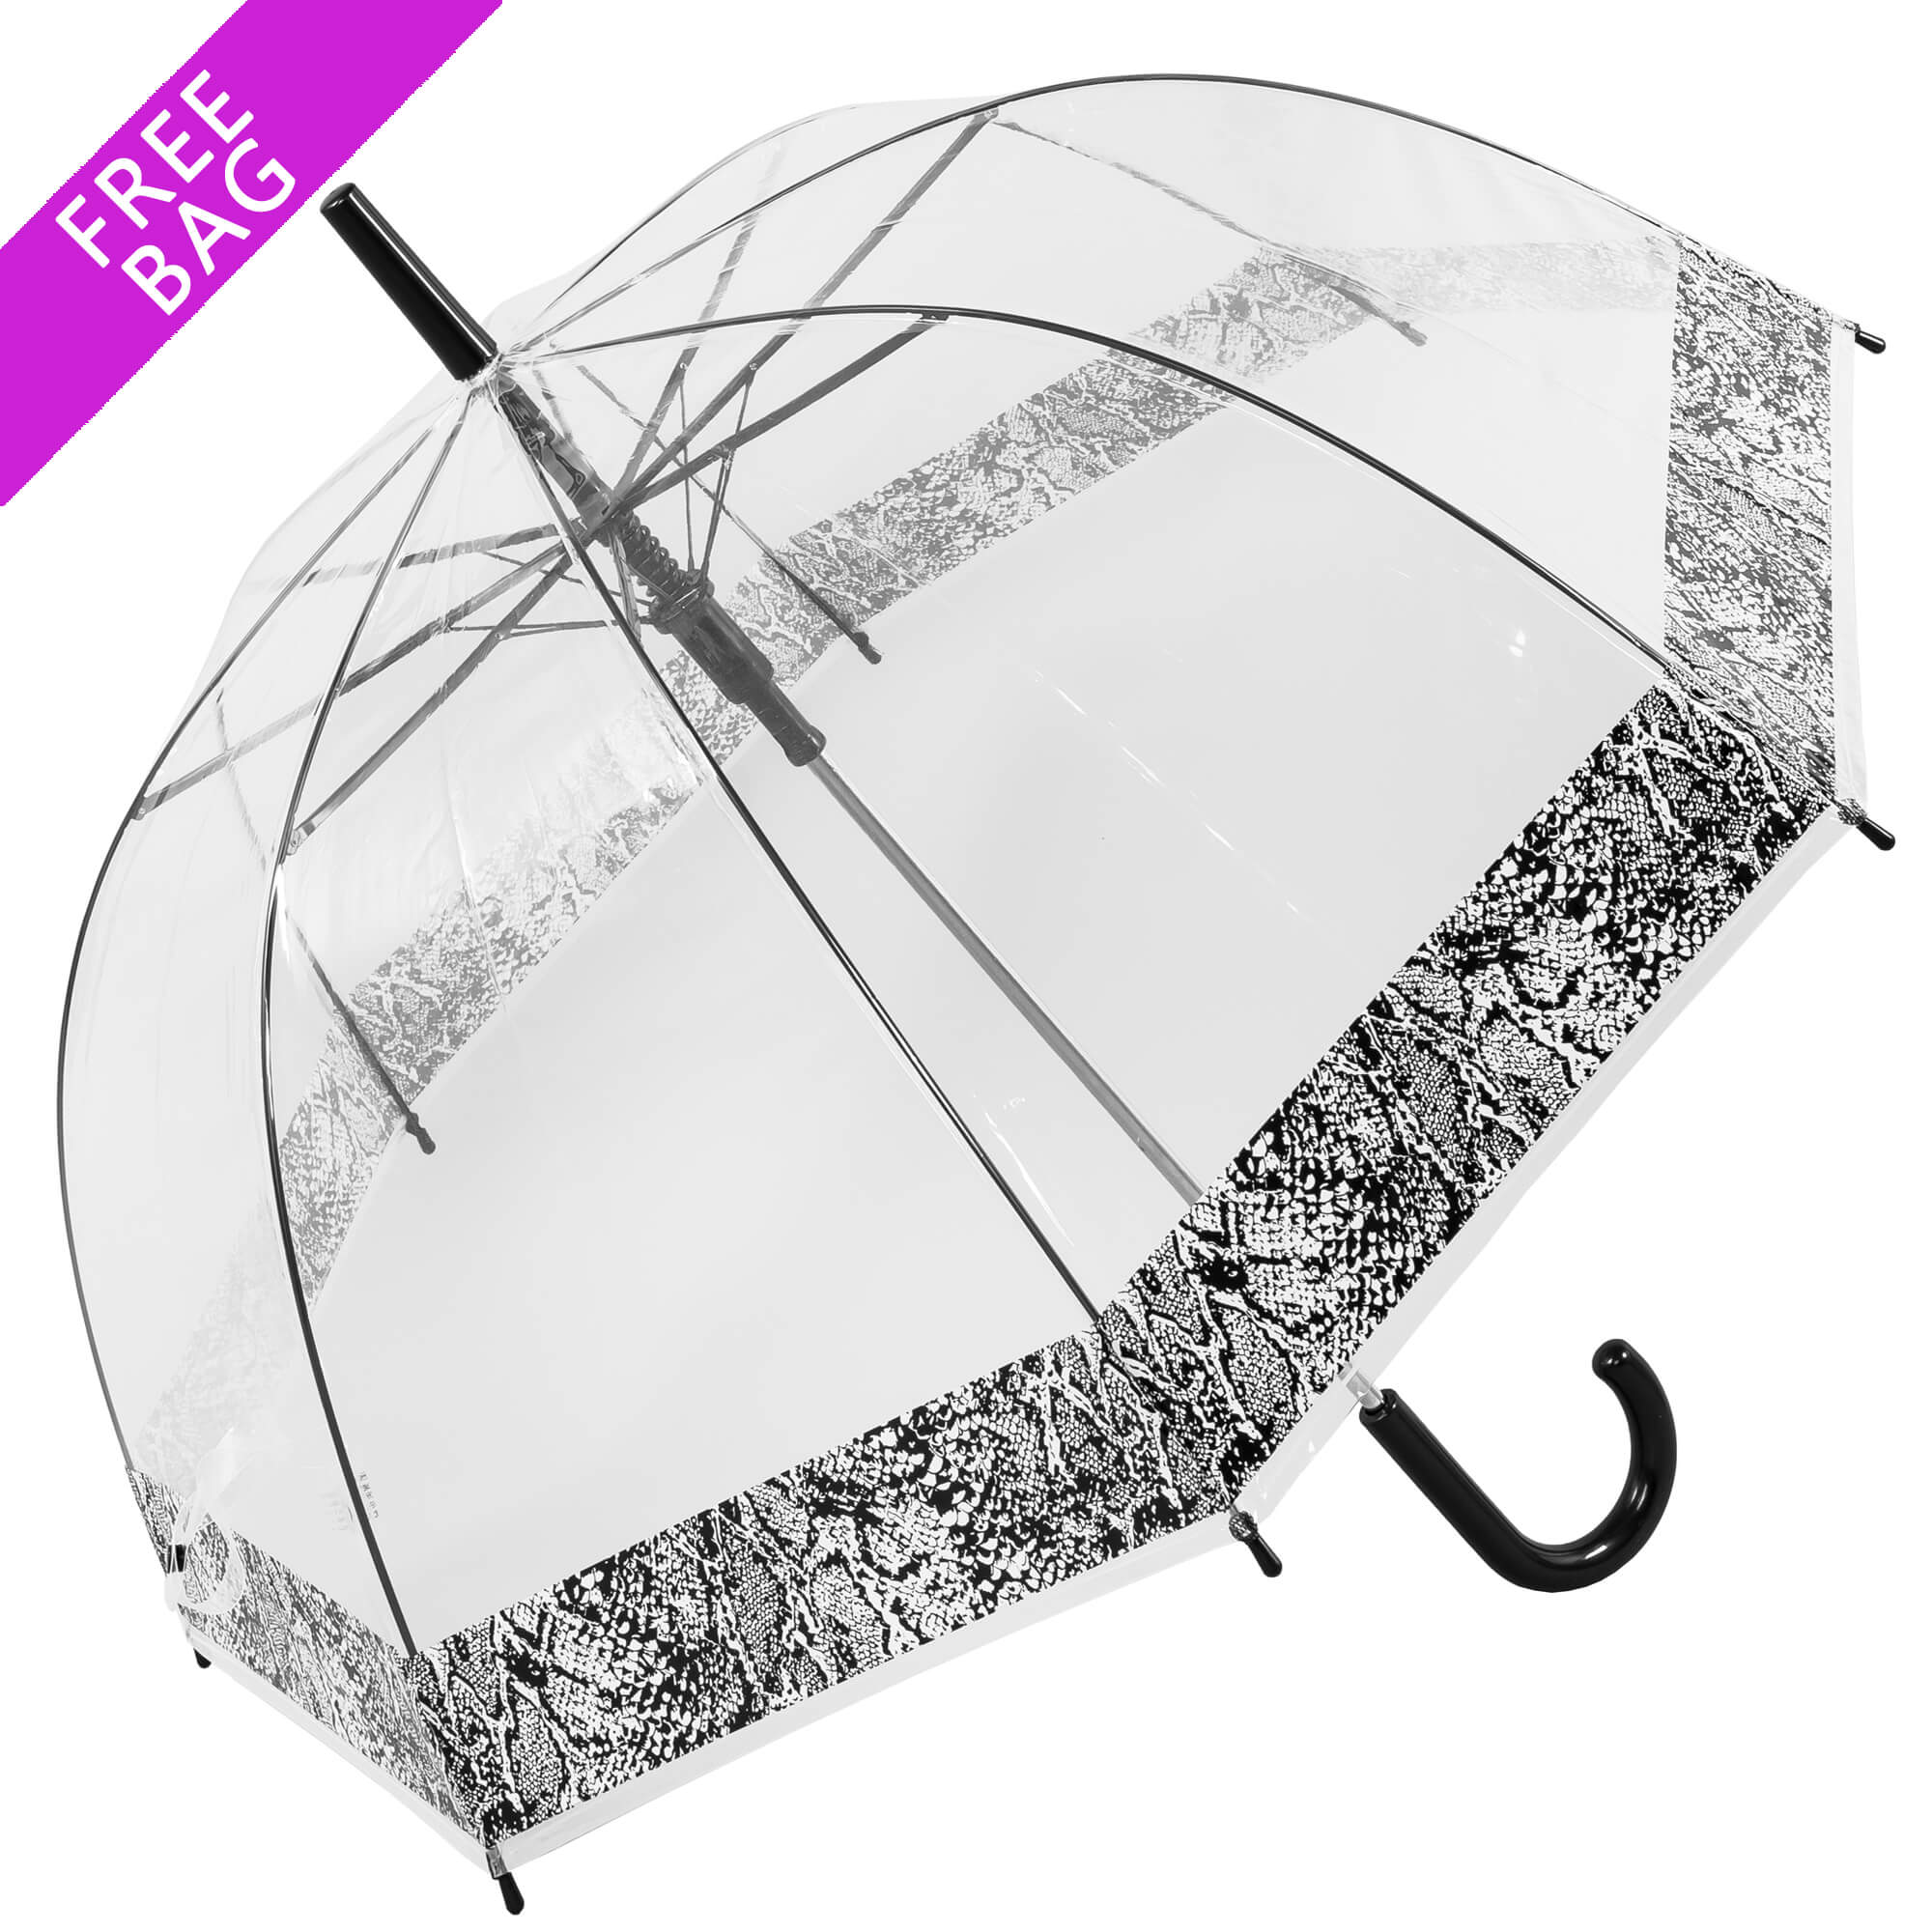 Auto Snakeskin Bordered Clear Umbrella With Free bag (18012)